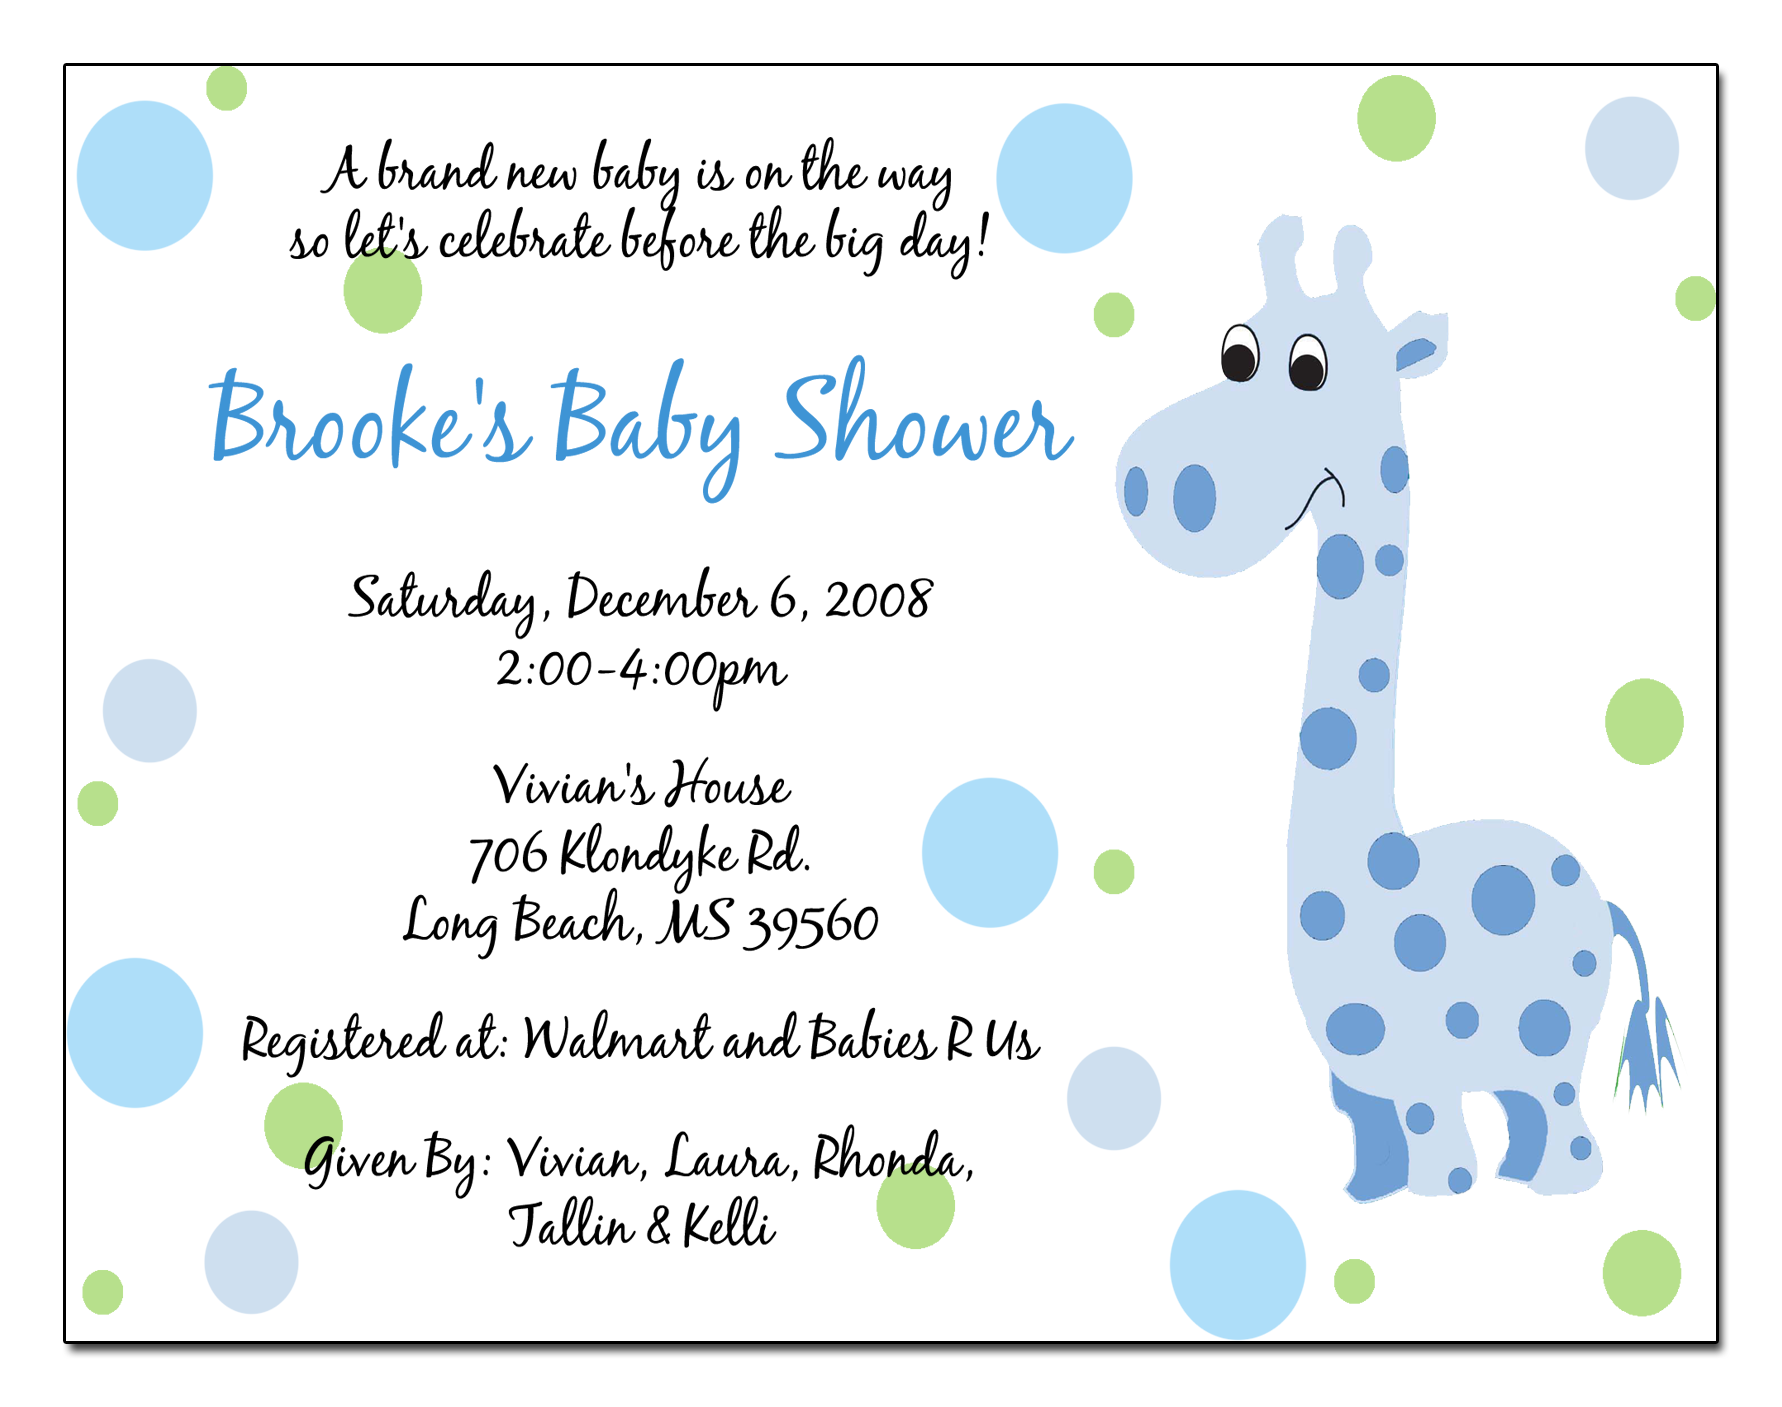 Collection Of Hundreds Of Free Birthday Invitation Picture From All - Baby shower invitation sayings